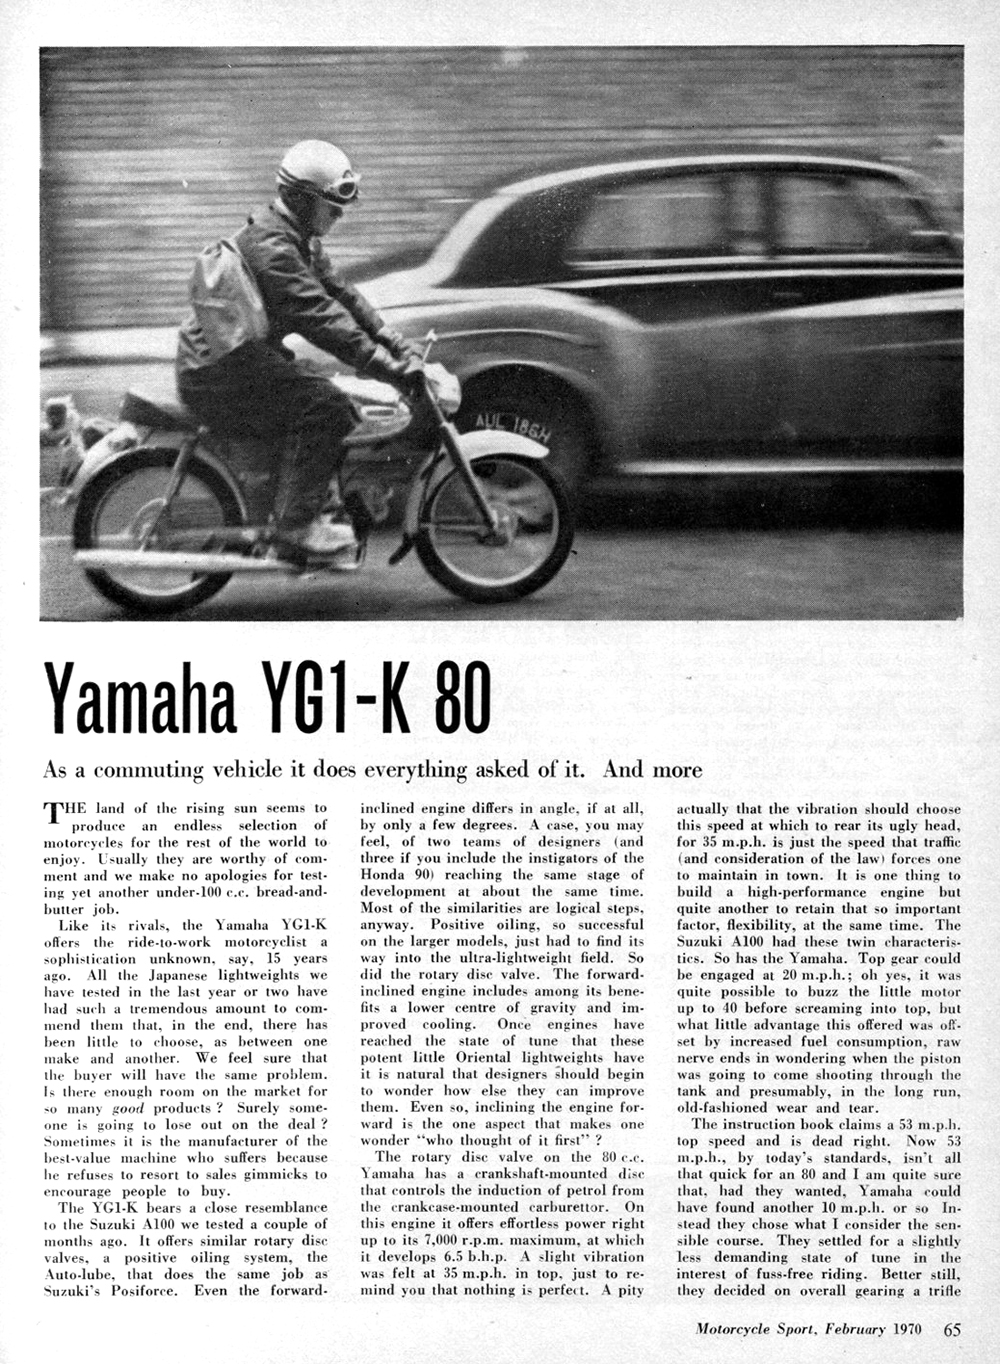 1970 Yamaha YG1-K 80 road test 1.jpg